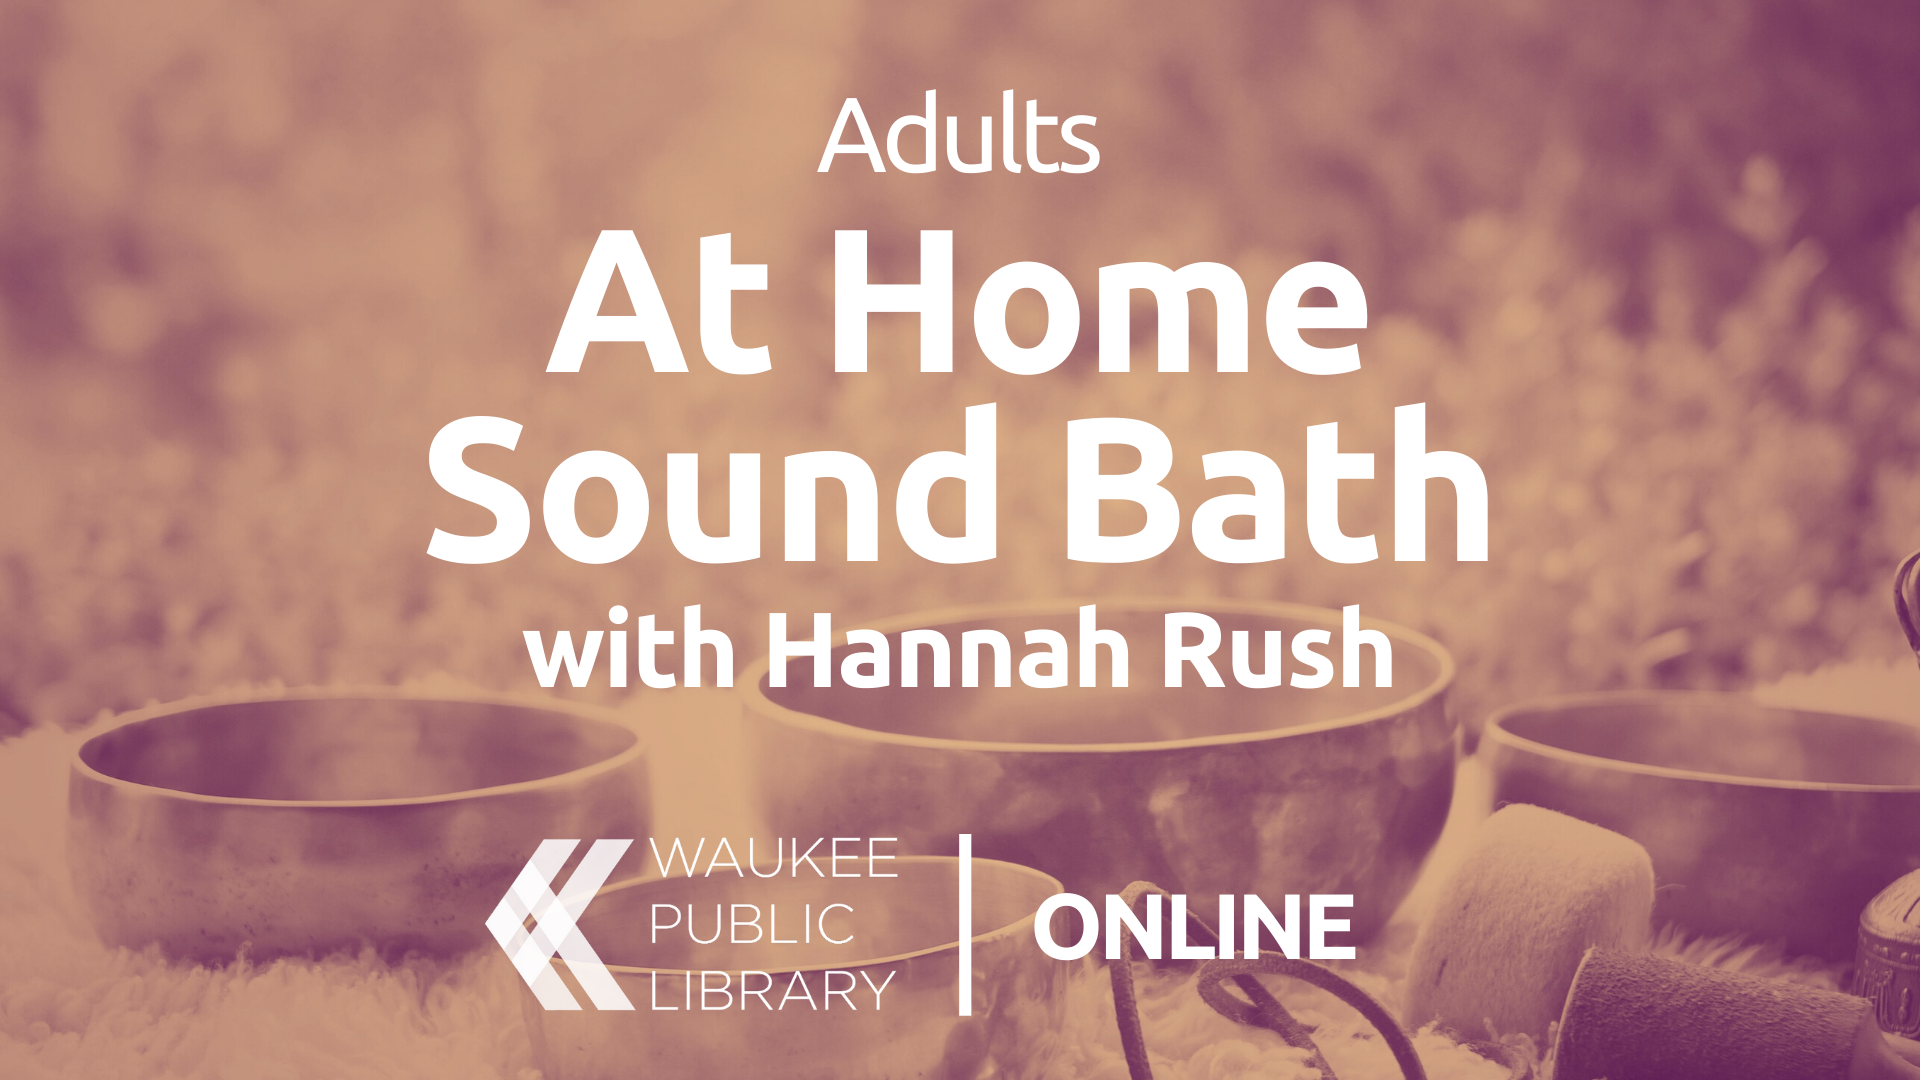 At Home Sound Bath with Hannah Rush